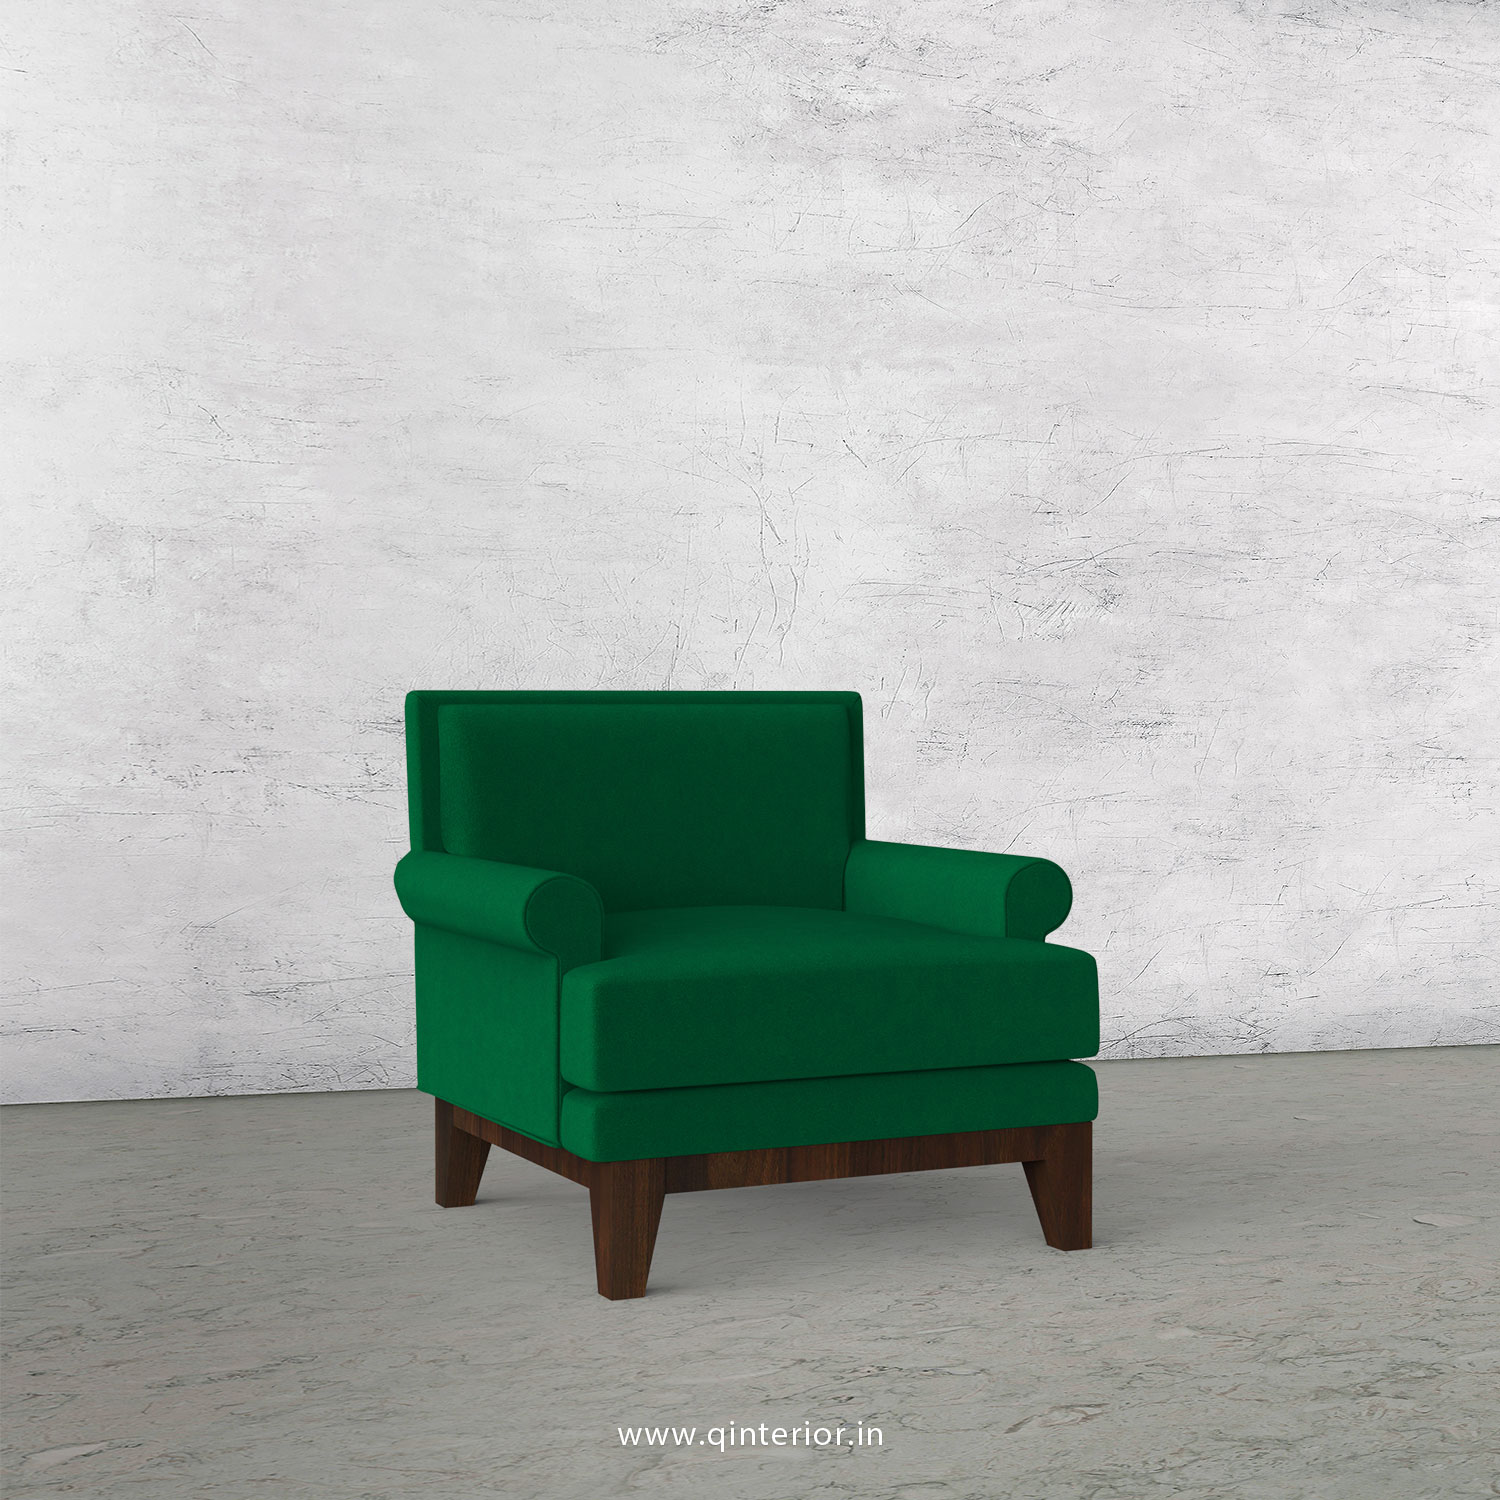 Aviana 1 Seater Sofa in Velvet Fabric - SFA001 VL17